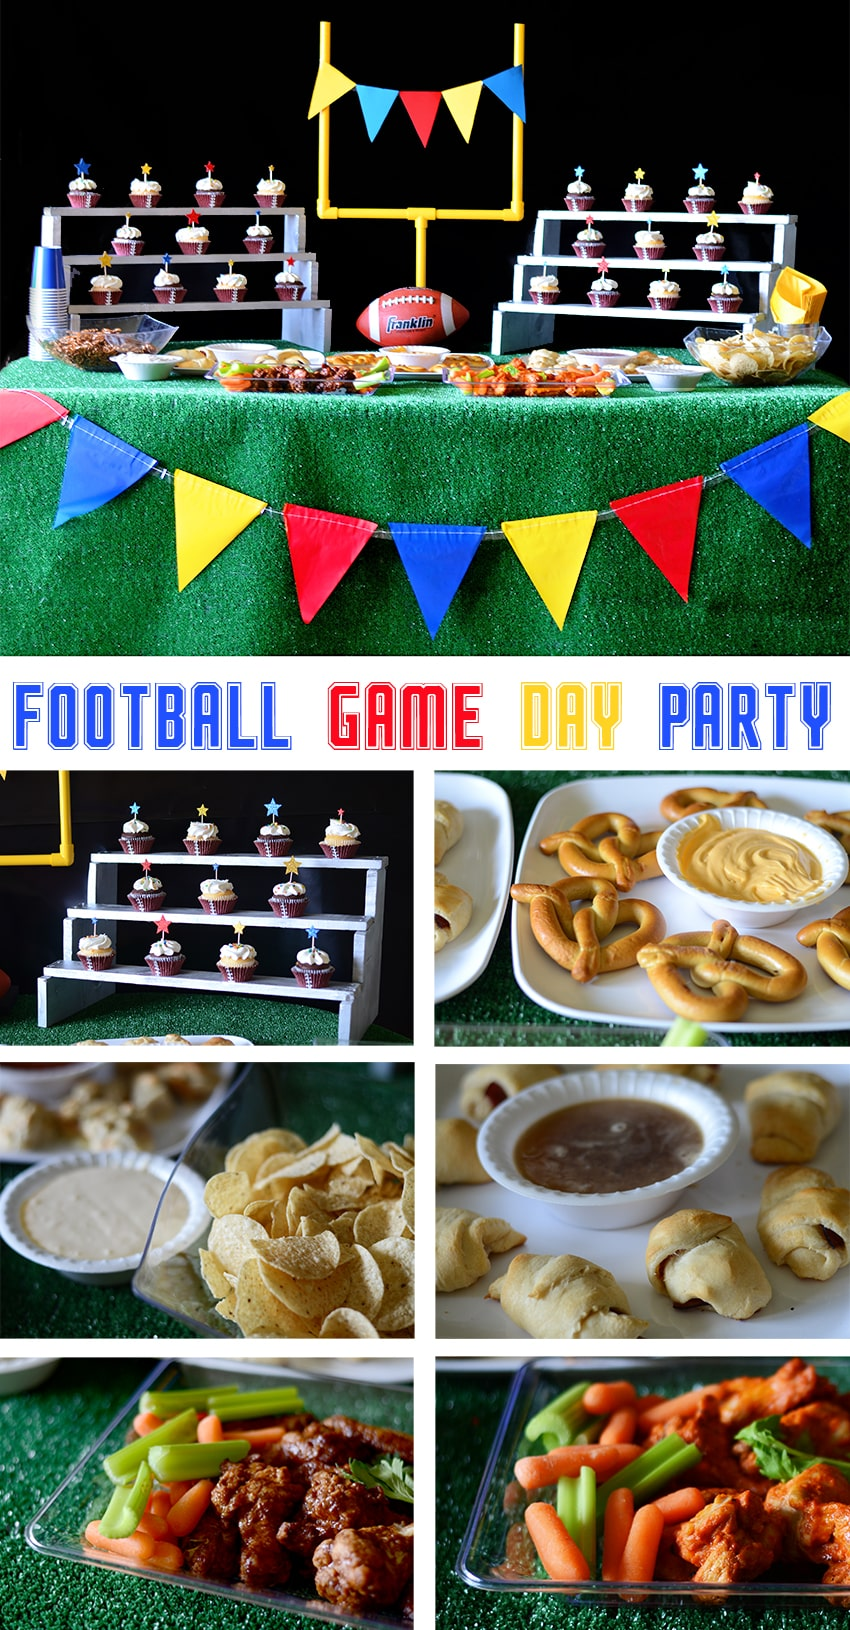 Football Game Day Party Ideas... decorations and recipes.  #cbias #shop #OneBuyForAll